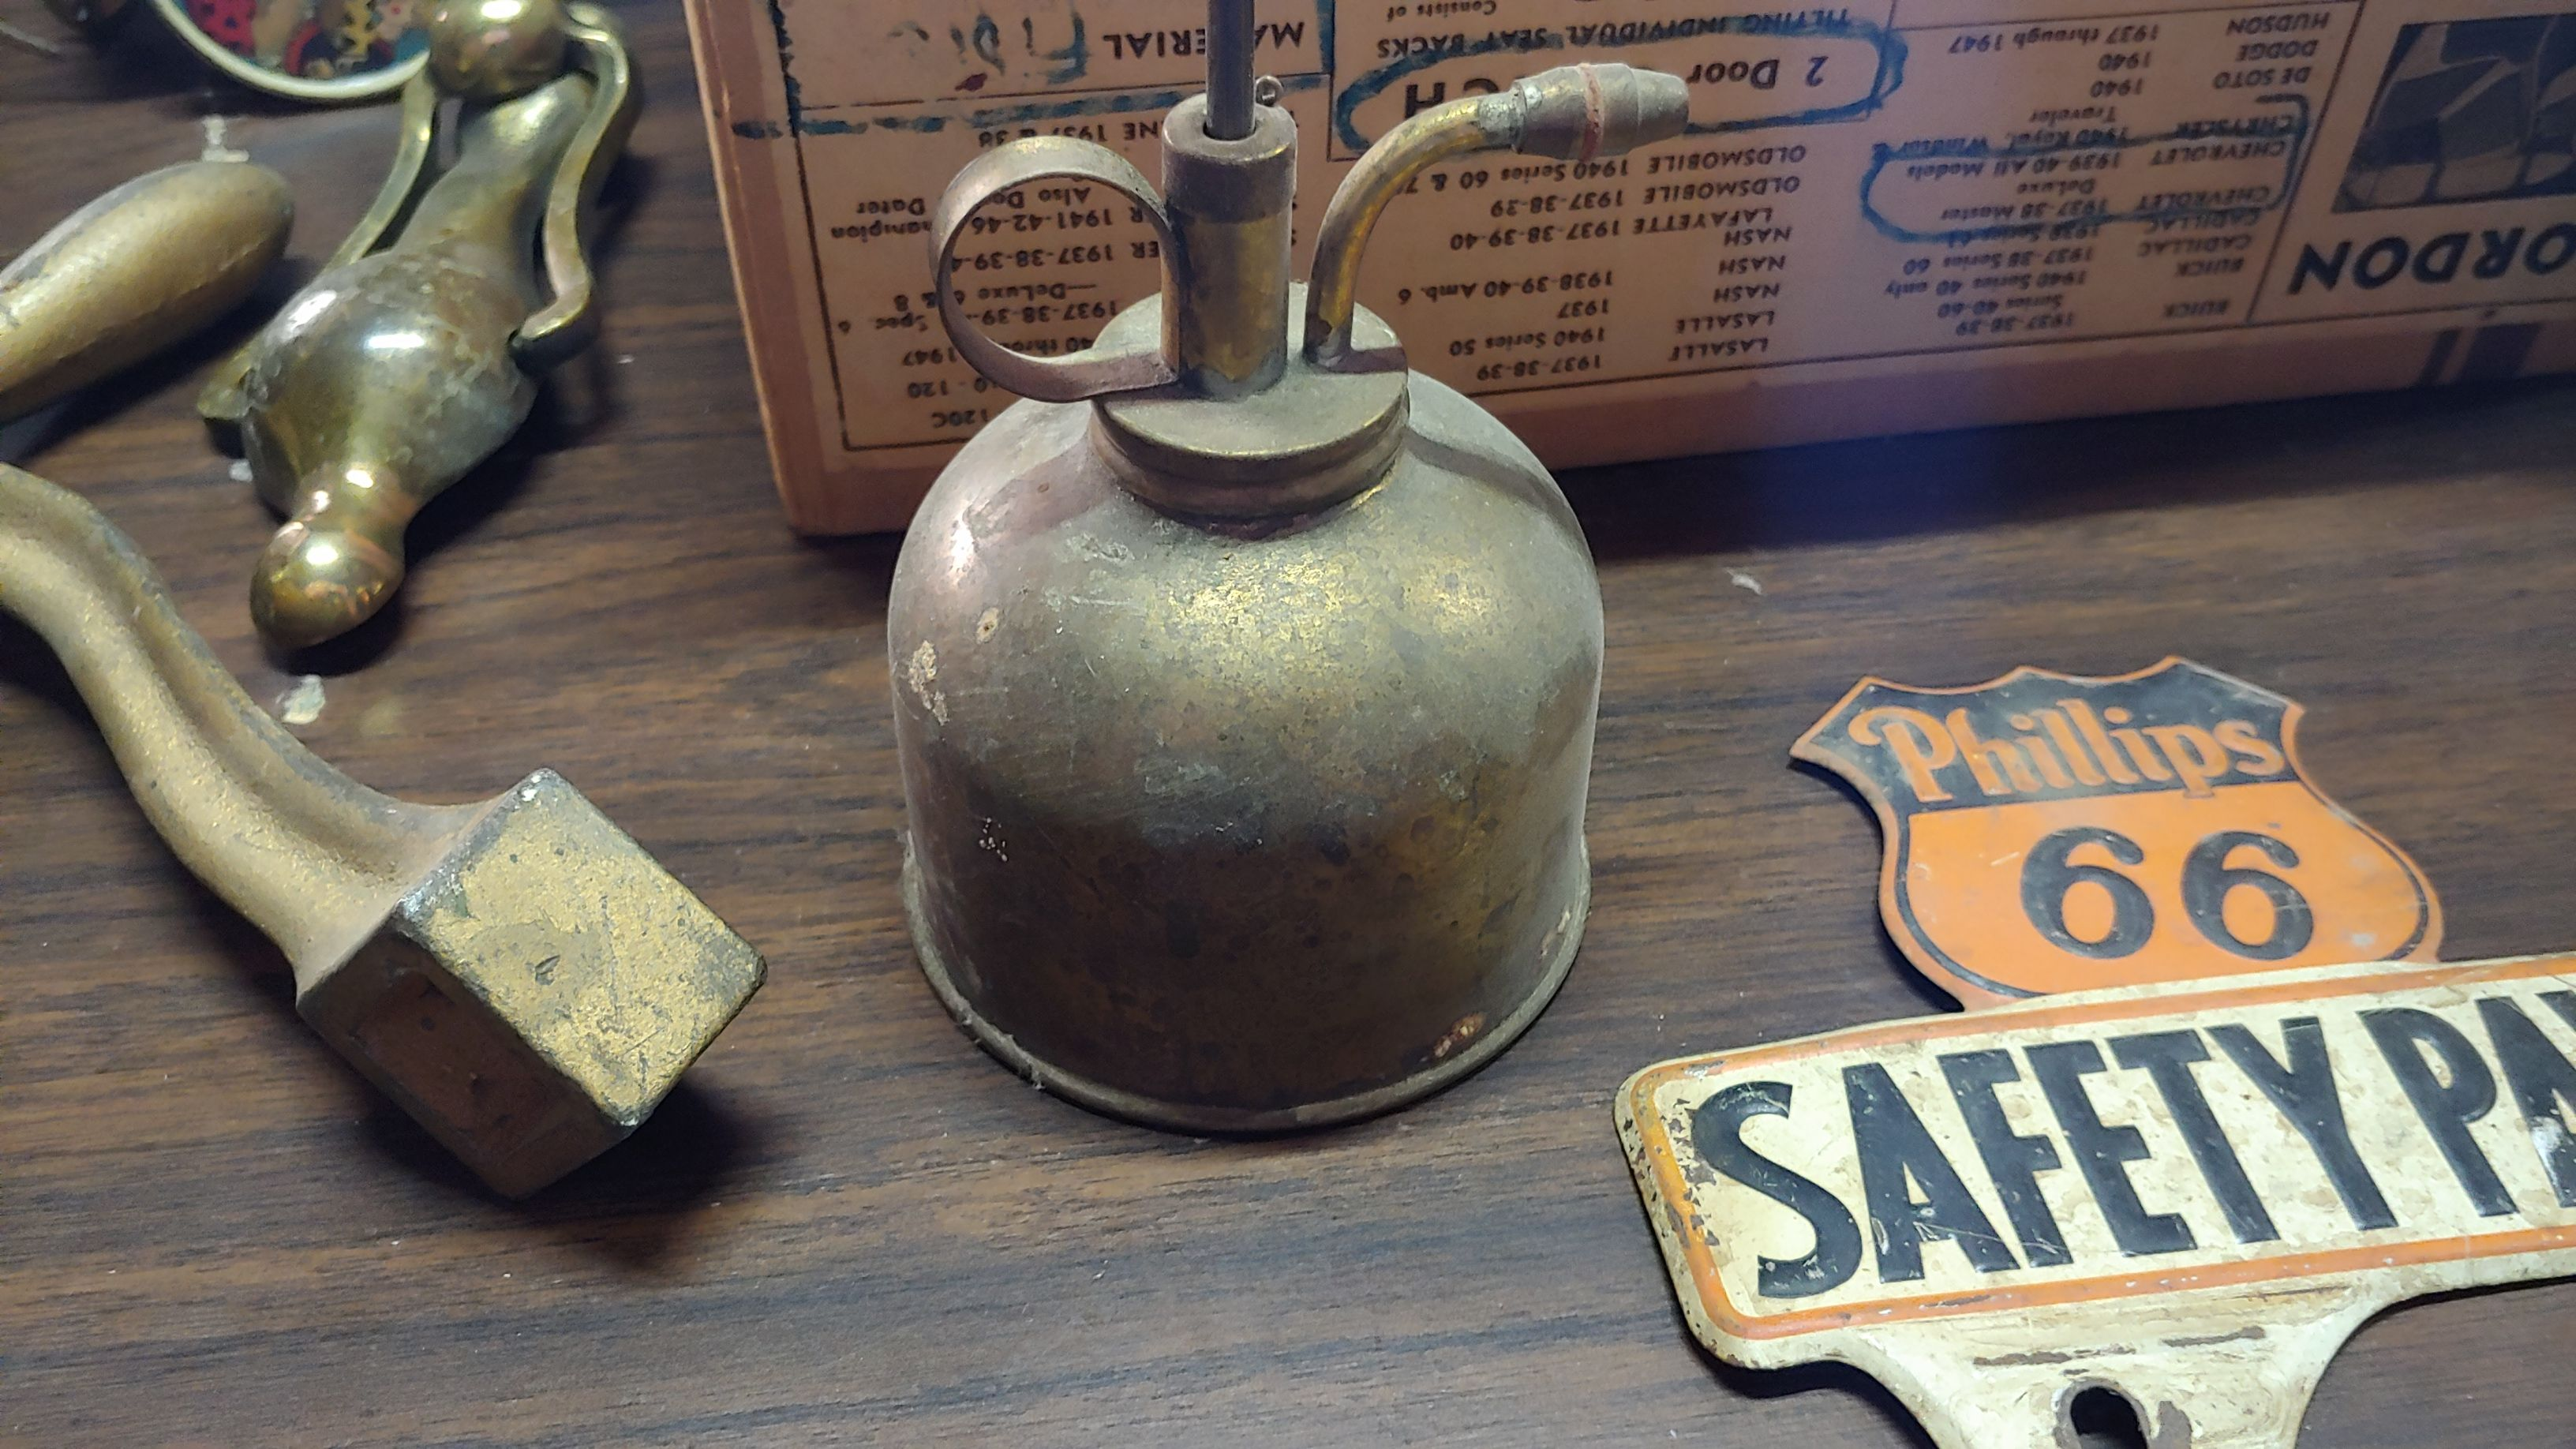 Item 61 in Personal Property Auction gallery